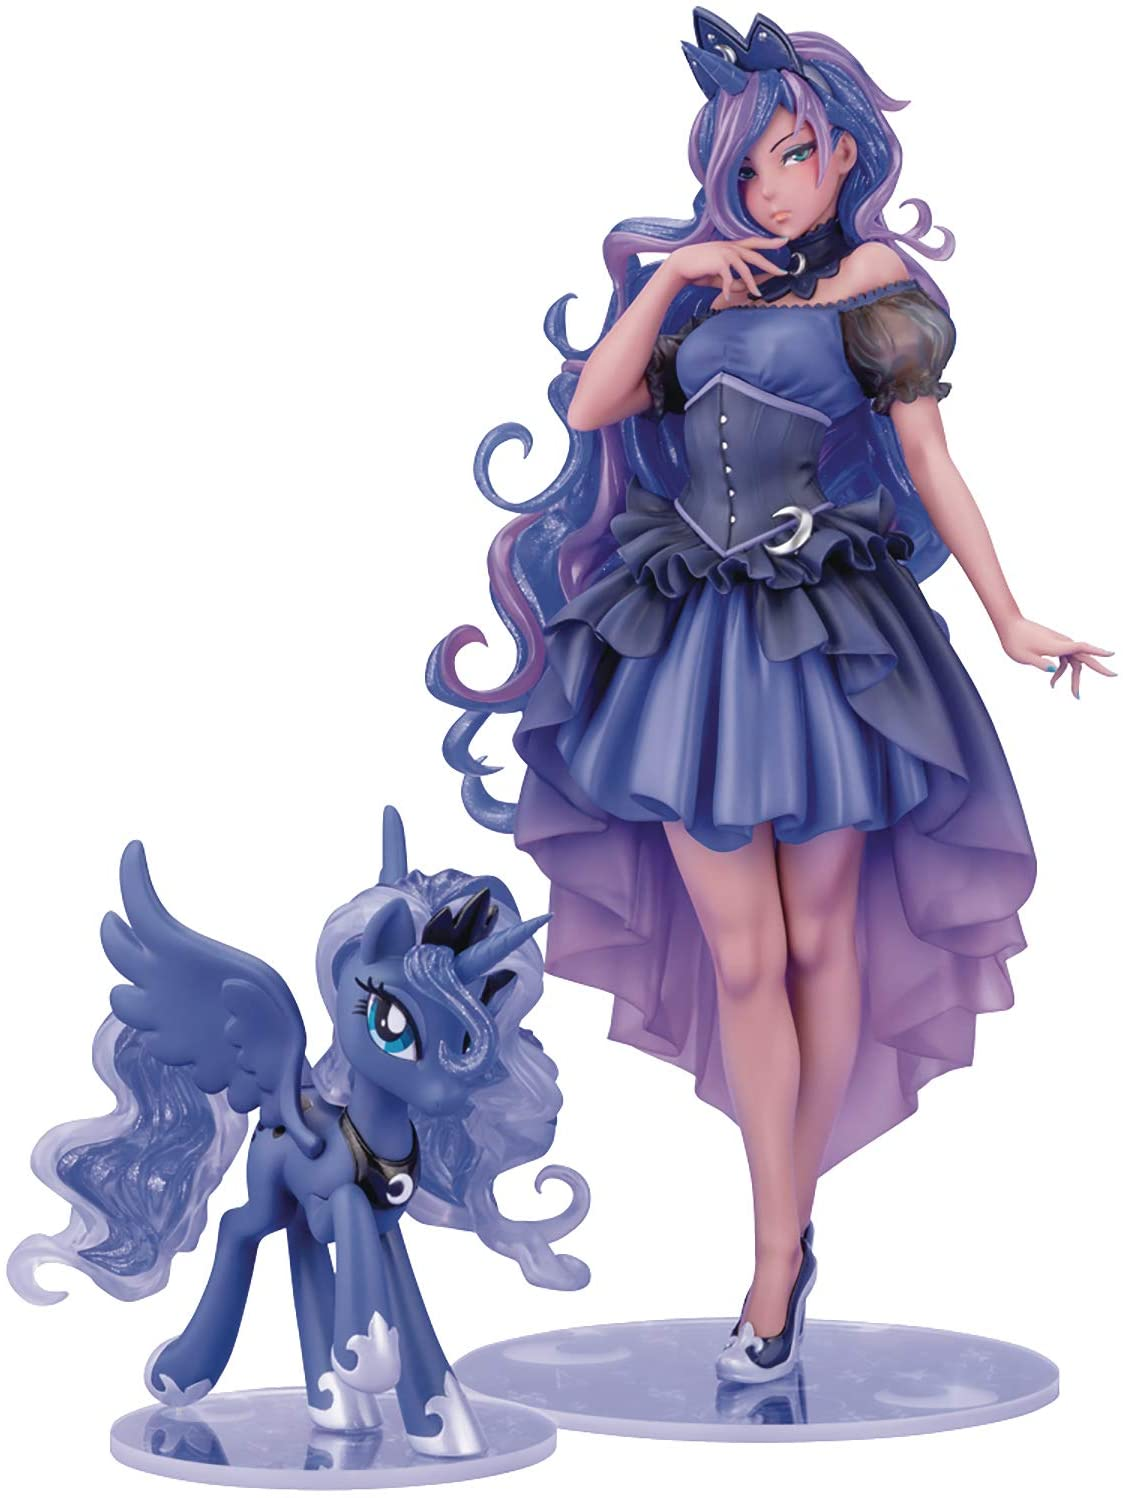 MLP Princess Luna PVC Doll Statue Set 1